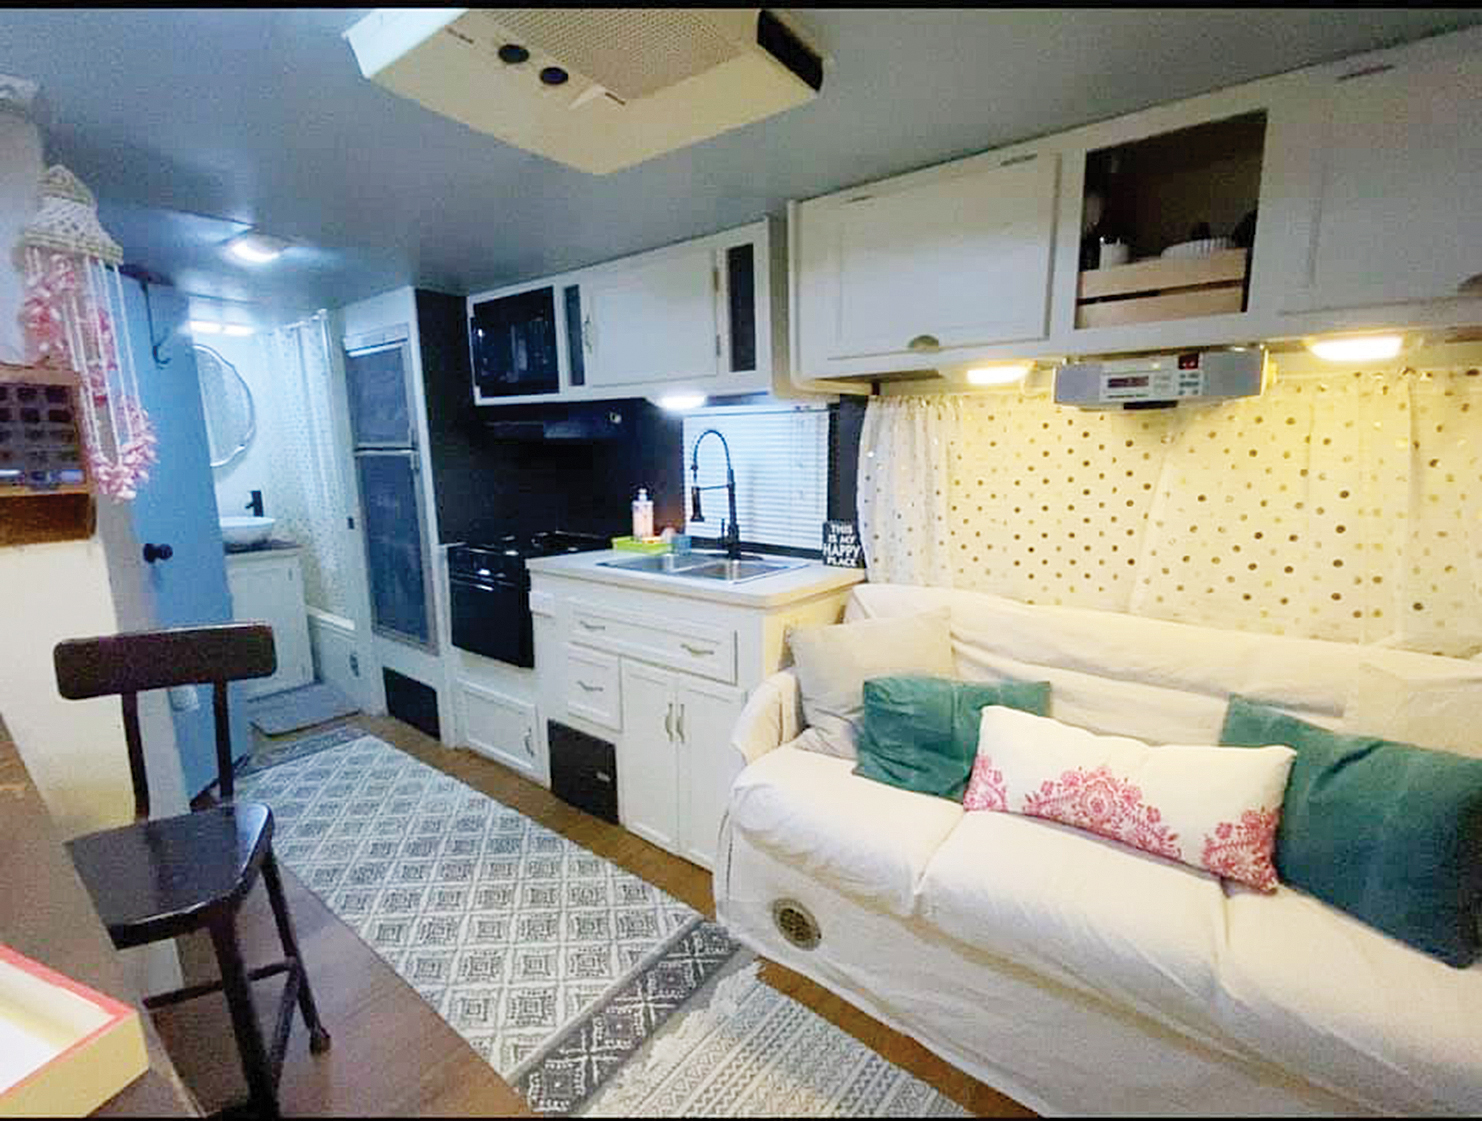 Idled traveler offers RV to health care provider